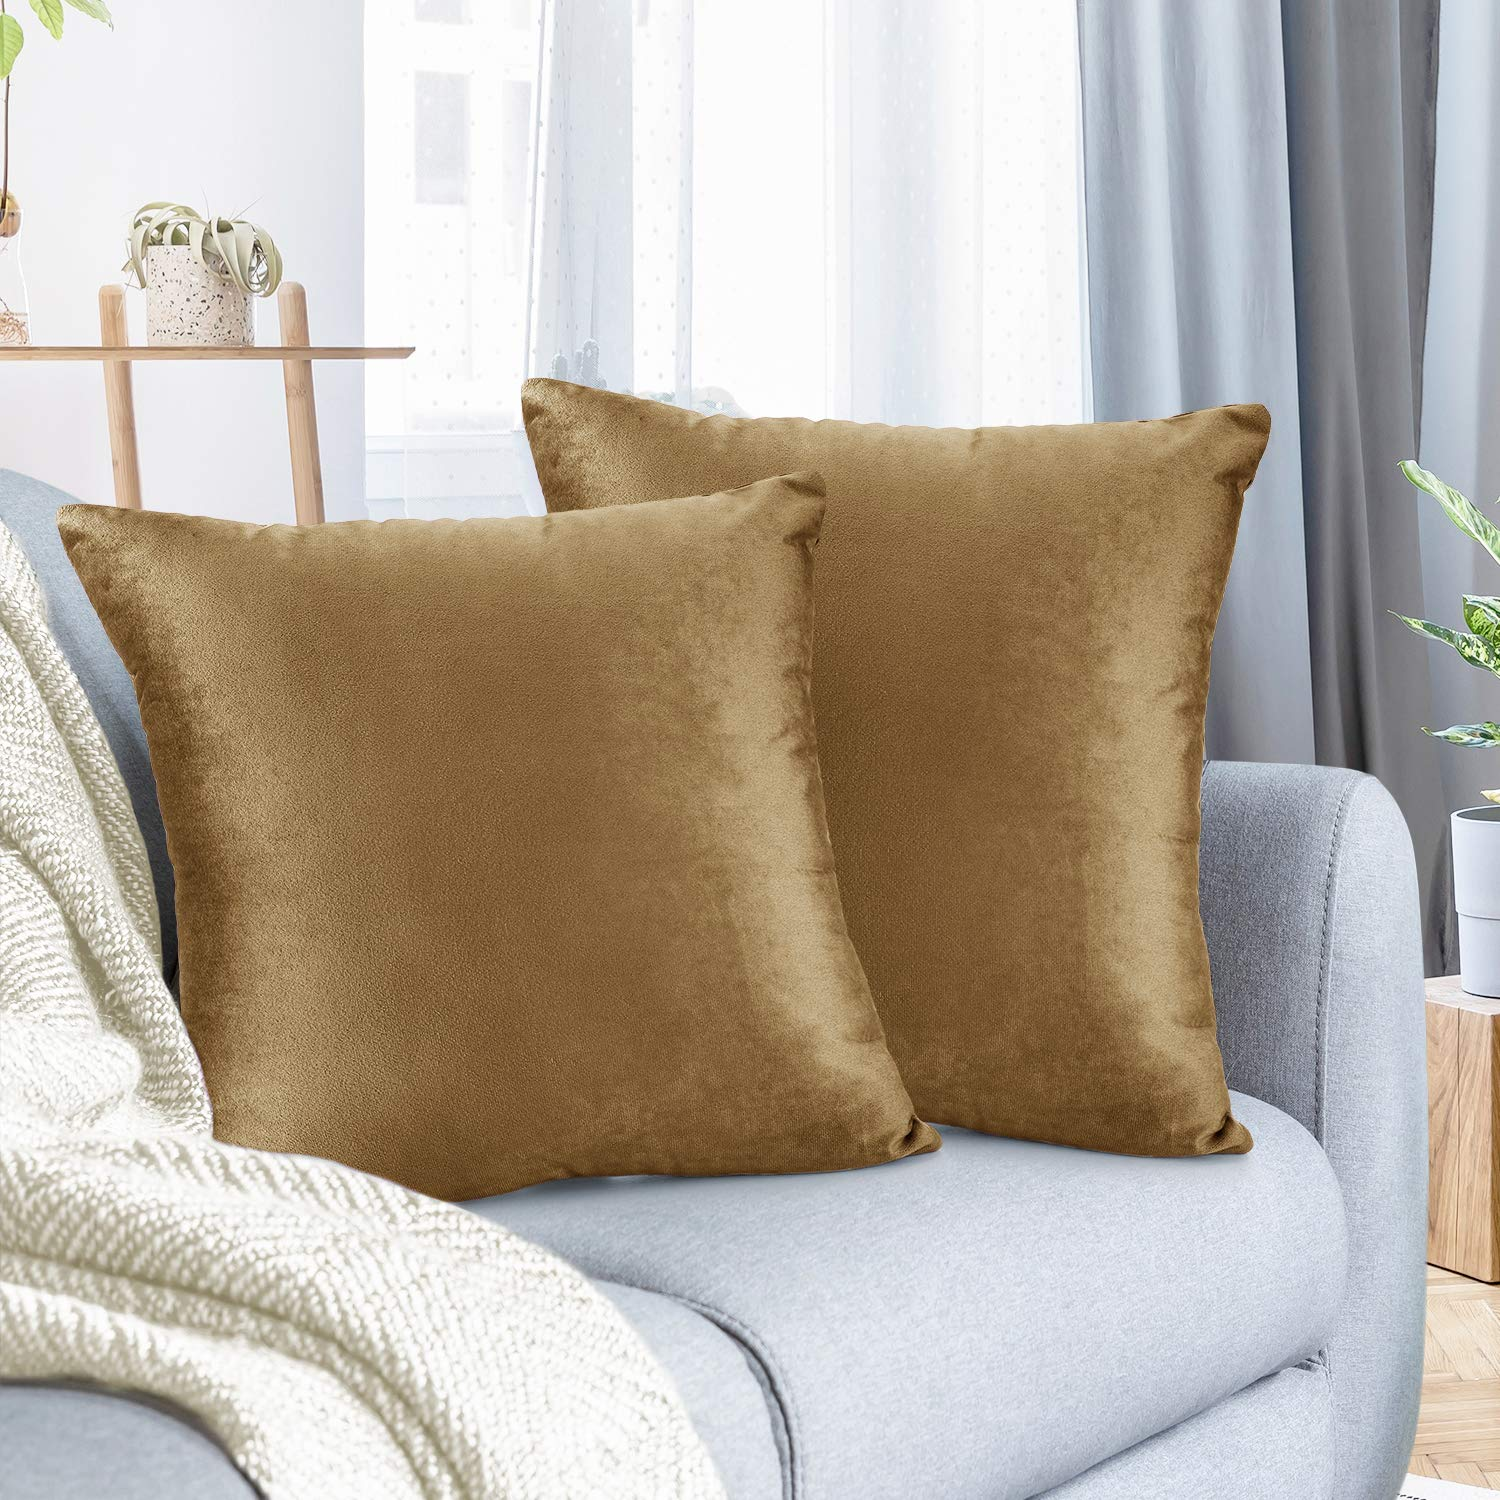 """Nestl Bedding Throw Pillow Cover 20"""" x 20"""" Soft Square Decorative Throw Pillow Covers Cozy Velvet Cushion Case for Sofa Couch Bedroom, Set of 2, Mocha Light Brown"""